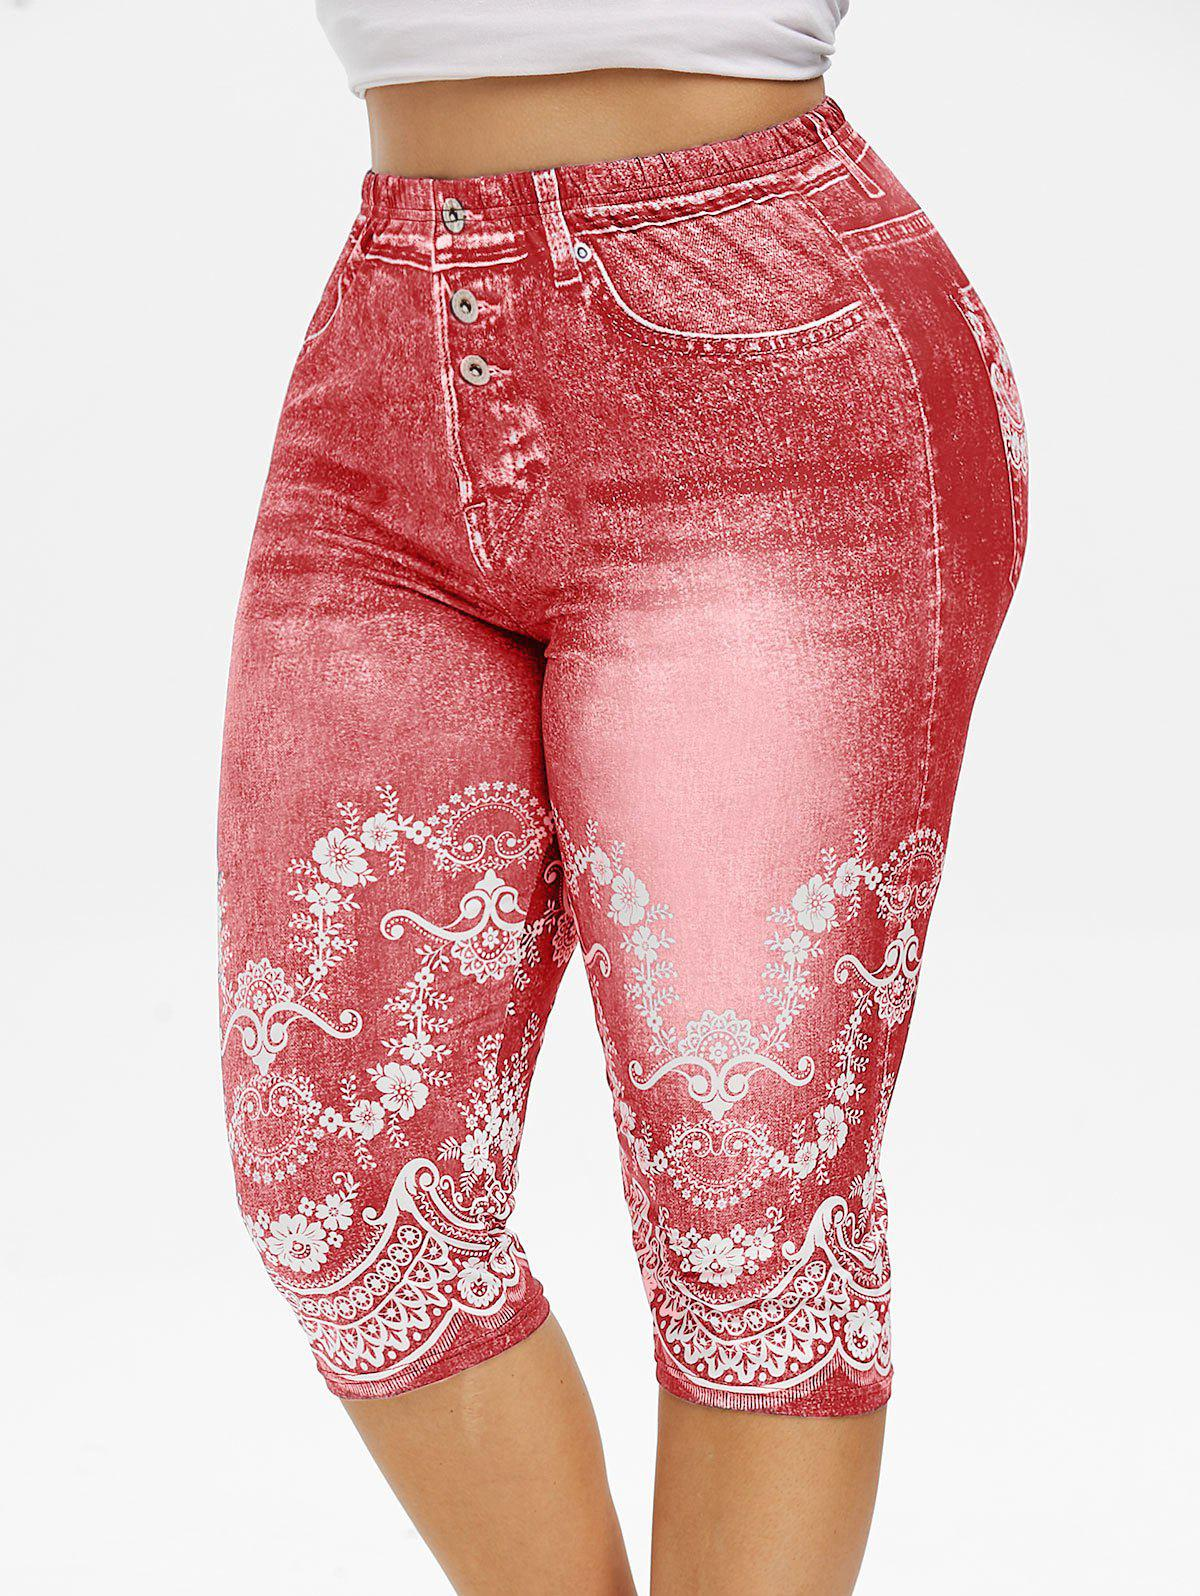 Plus Size Cropped 3D Floral Print Jeggings - PINK 5X